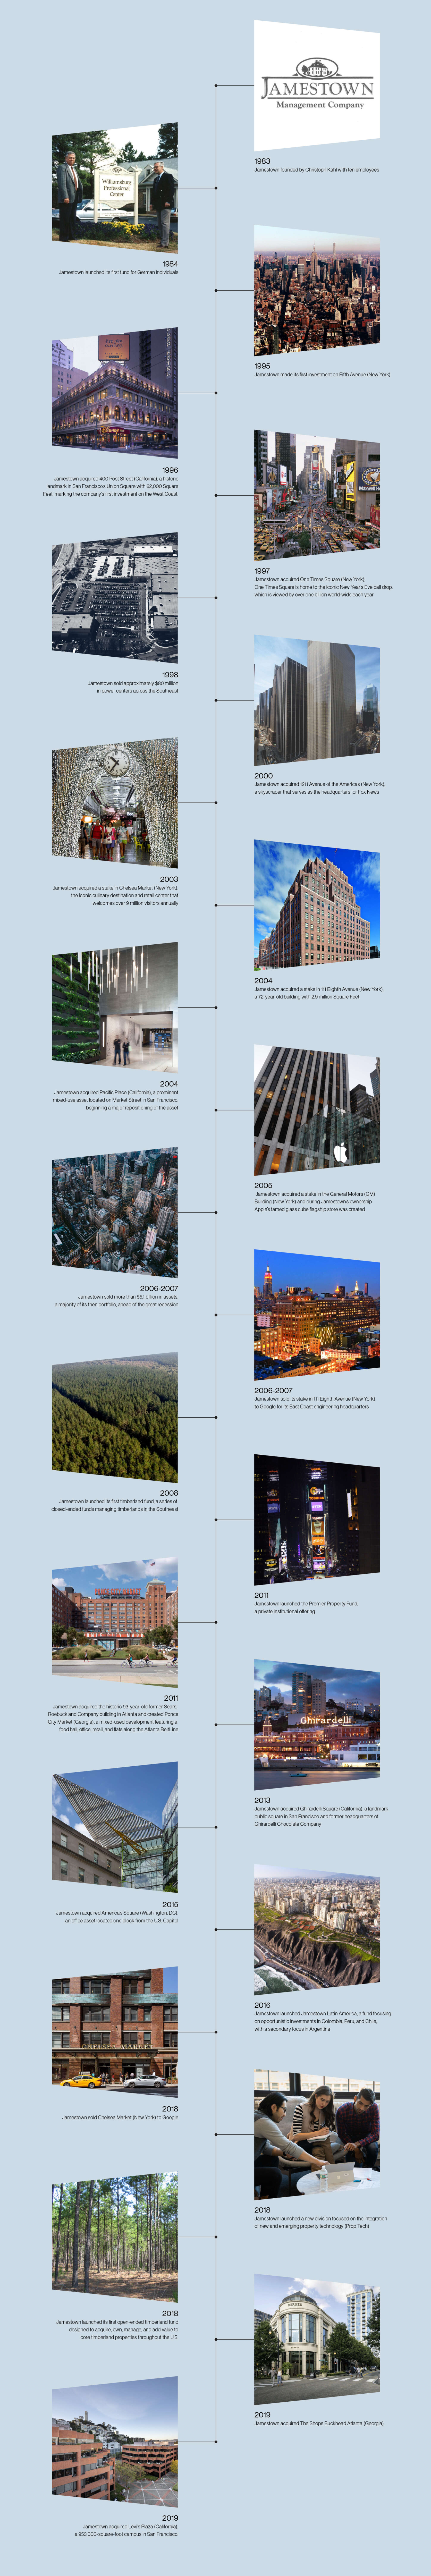 Timeline outlining various milestones of Jamestown from its founding in 1983 until now.